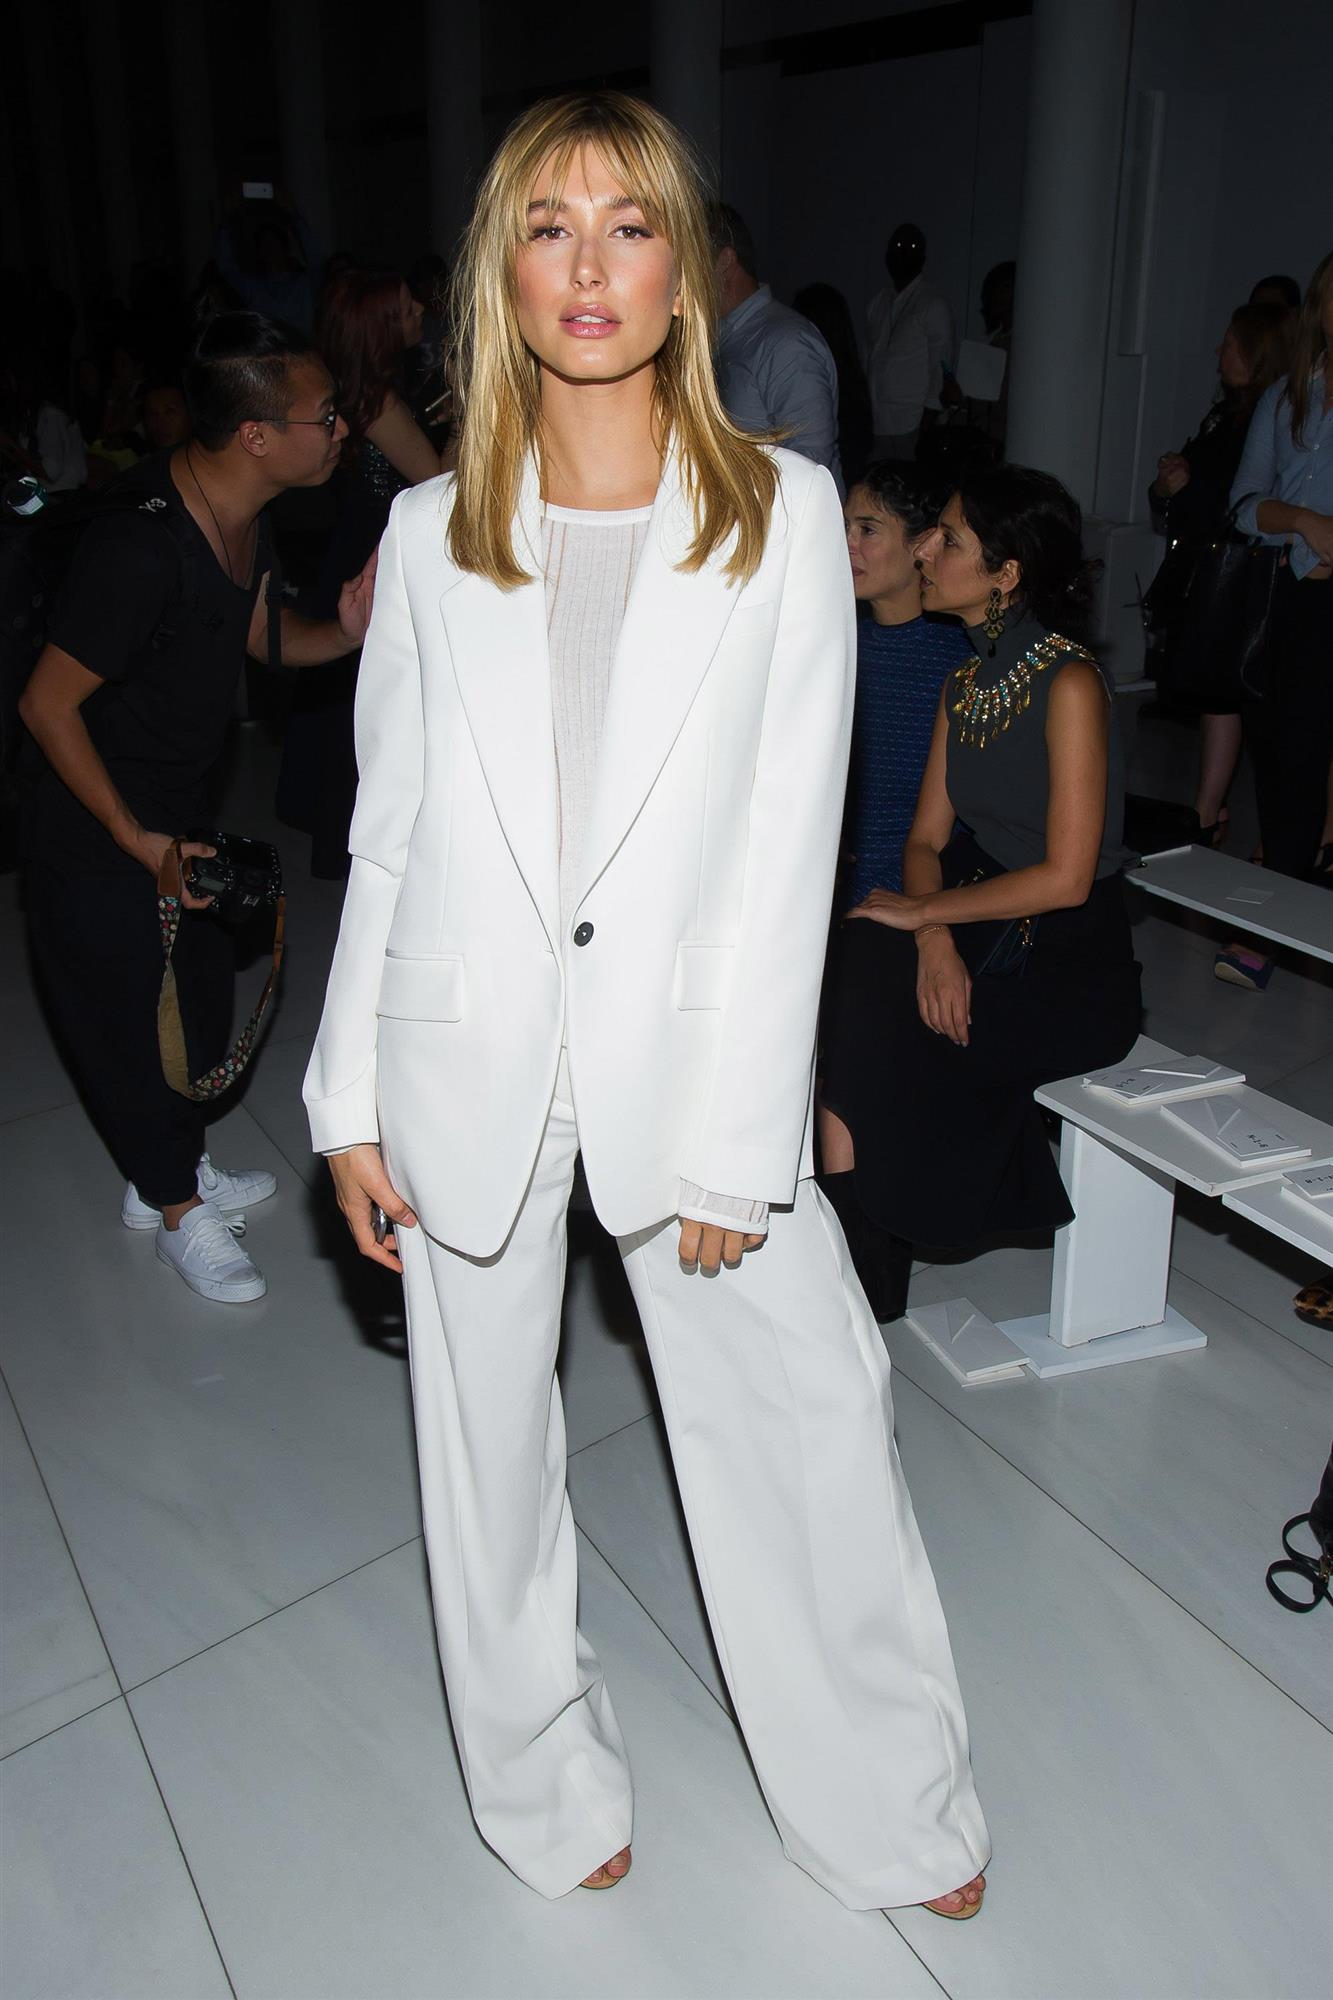 Hailey Baldwin. Total Look en blanco